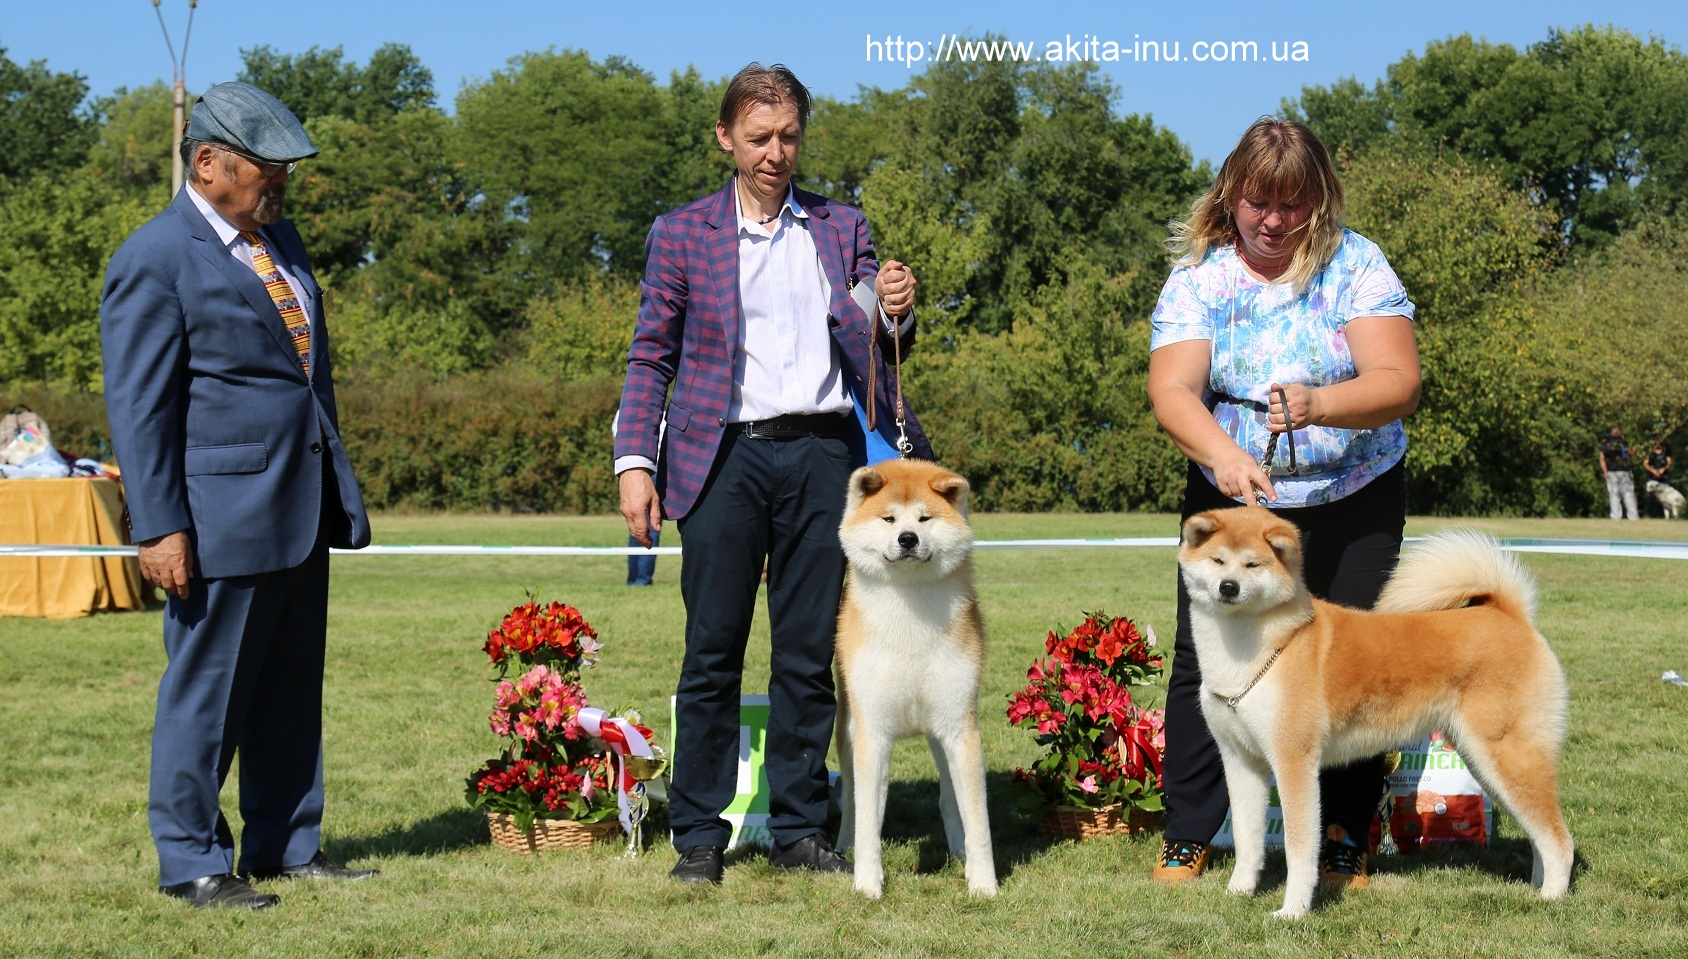 Ukrainian Club Breed Japanese Dogs - Judje Hiroshi Kamisato Japan